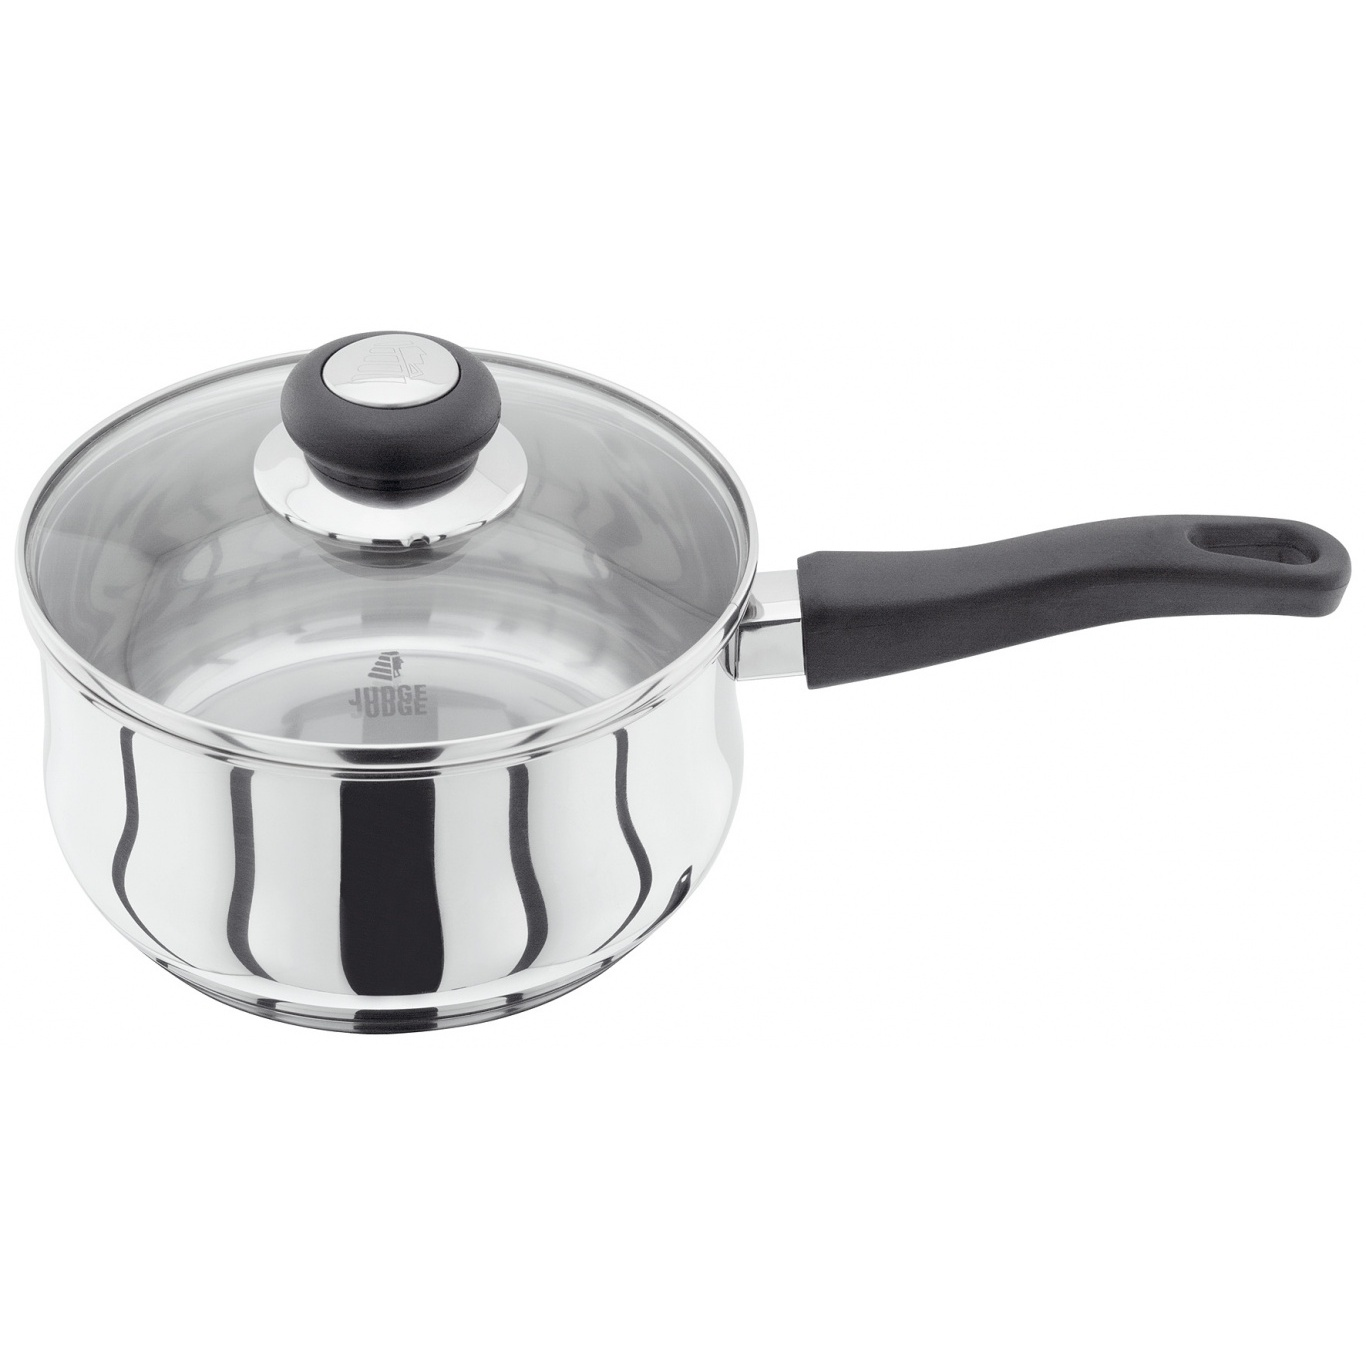 Image of Judge Vista 20cm 0.85L Saucepan